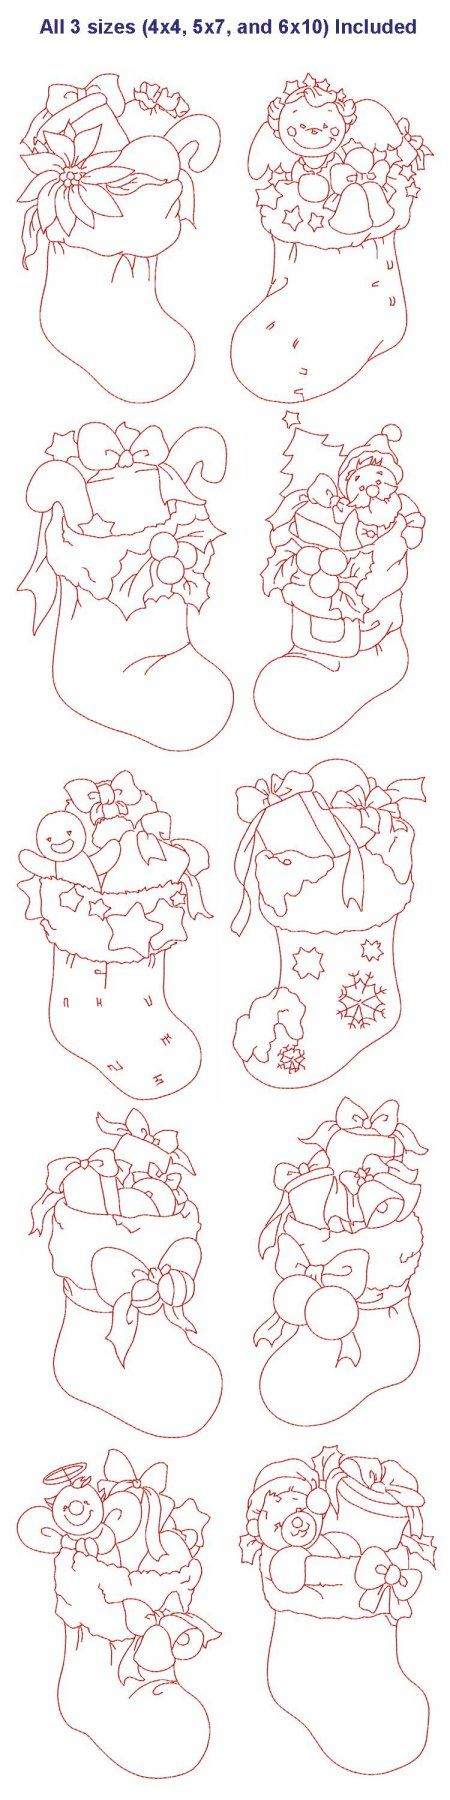 Image detail for applique machine embroidery designs free